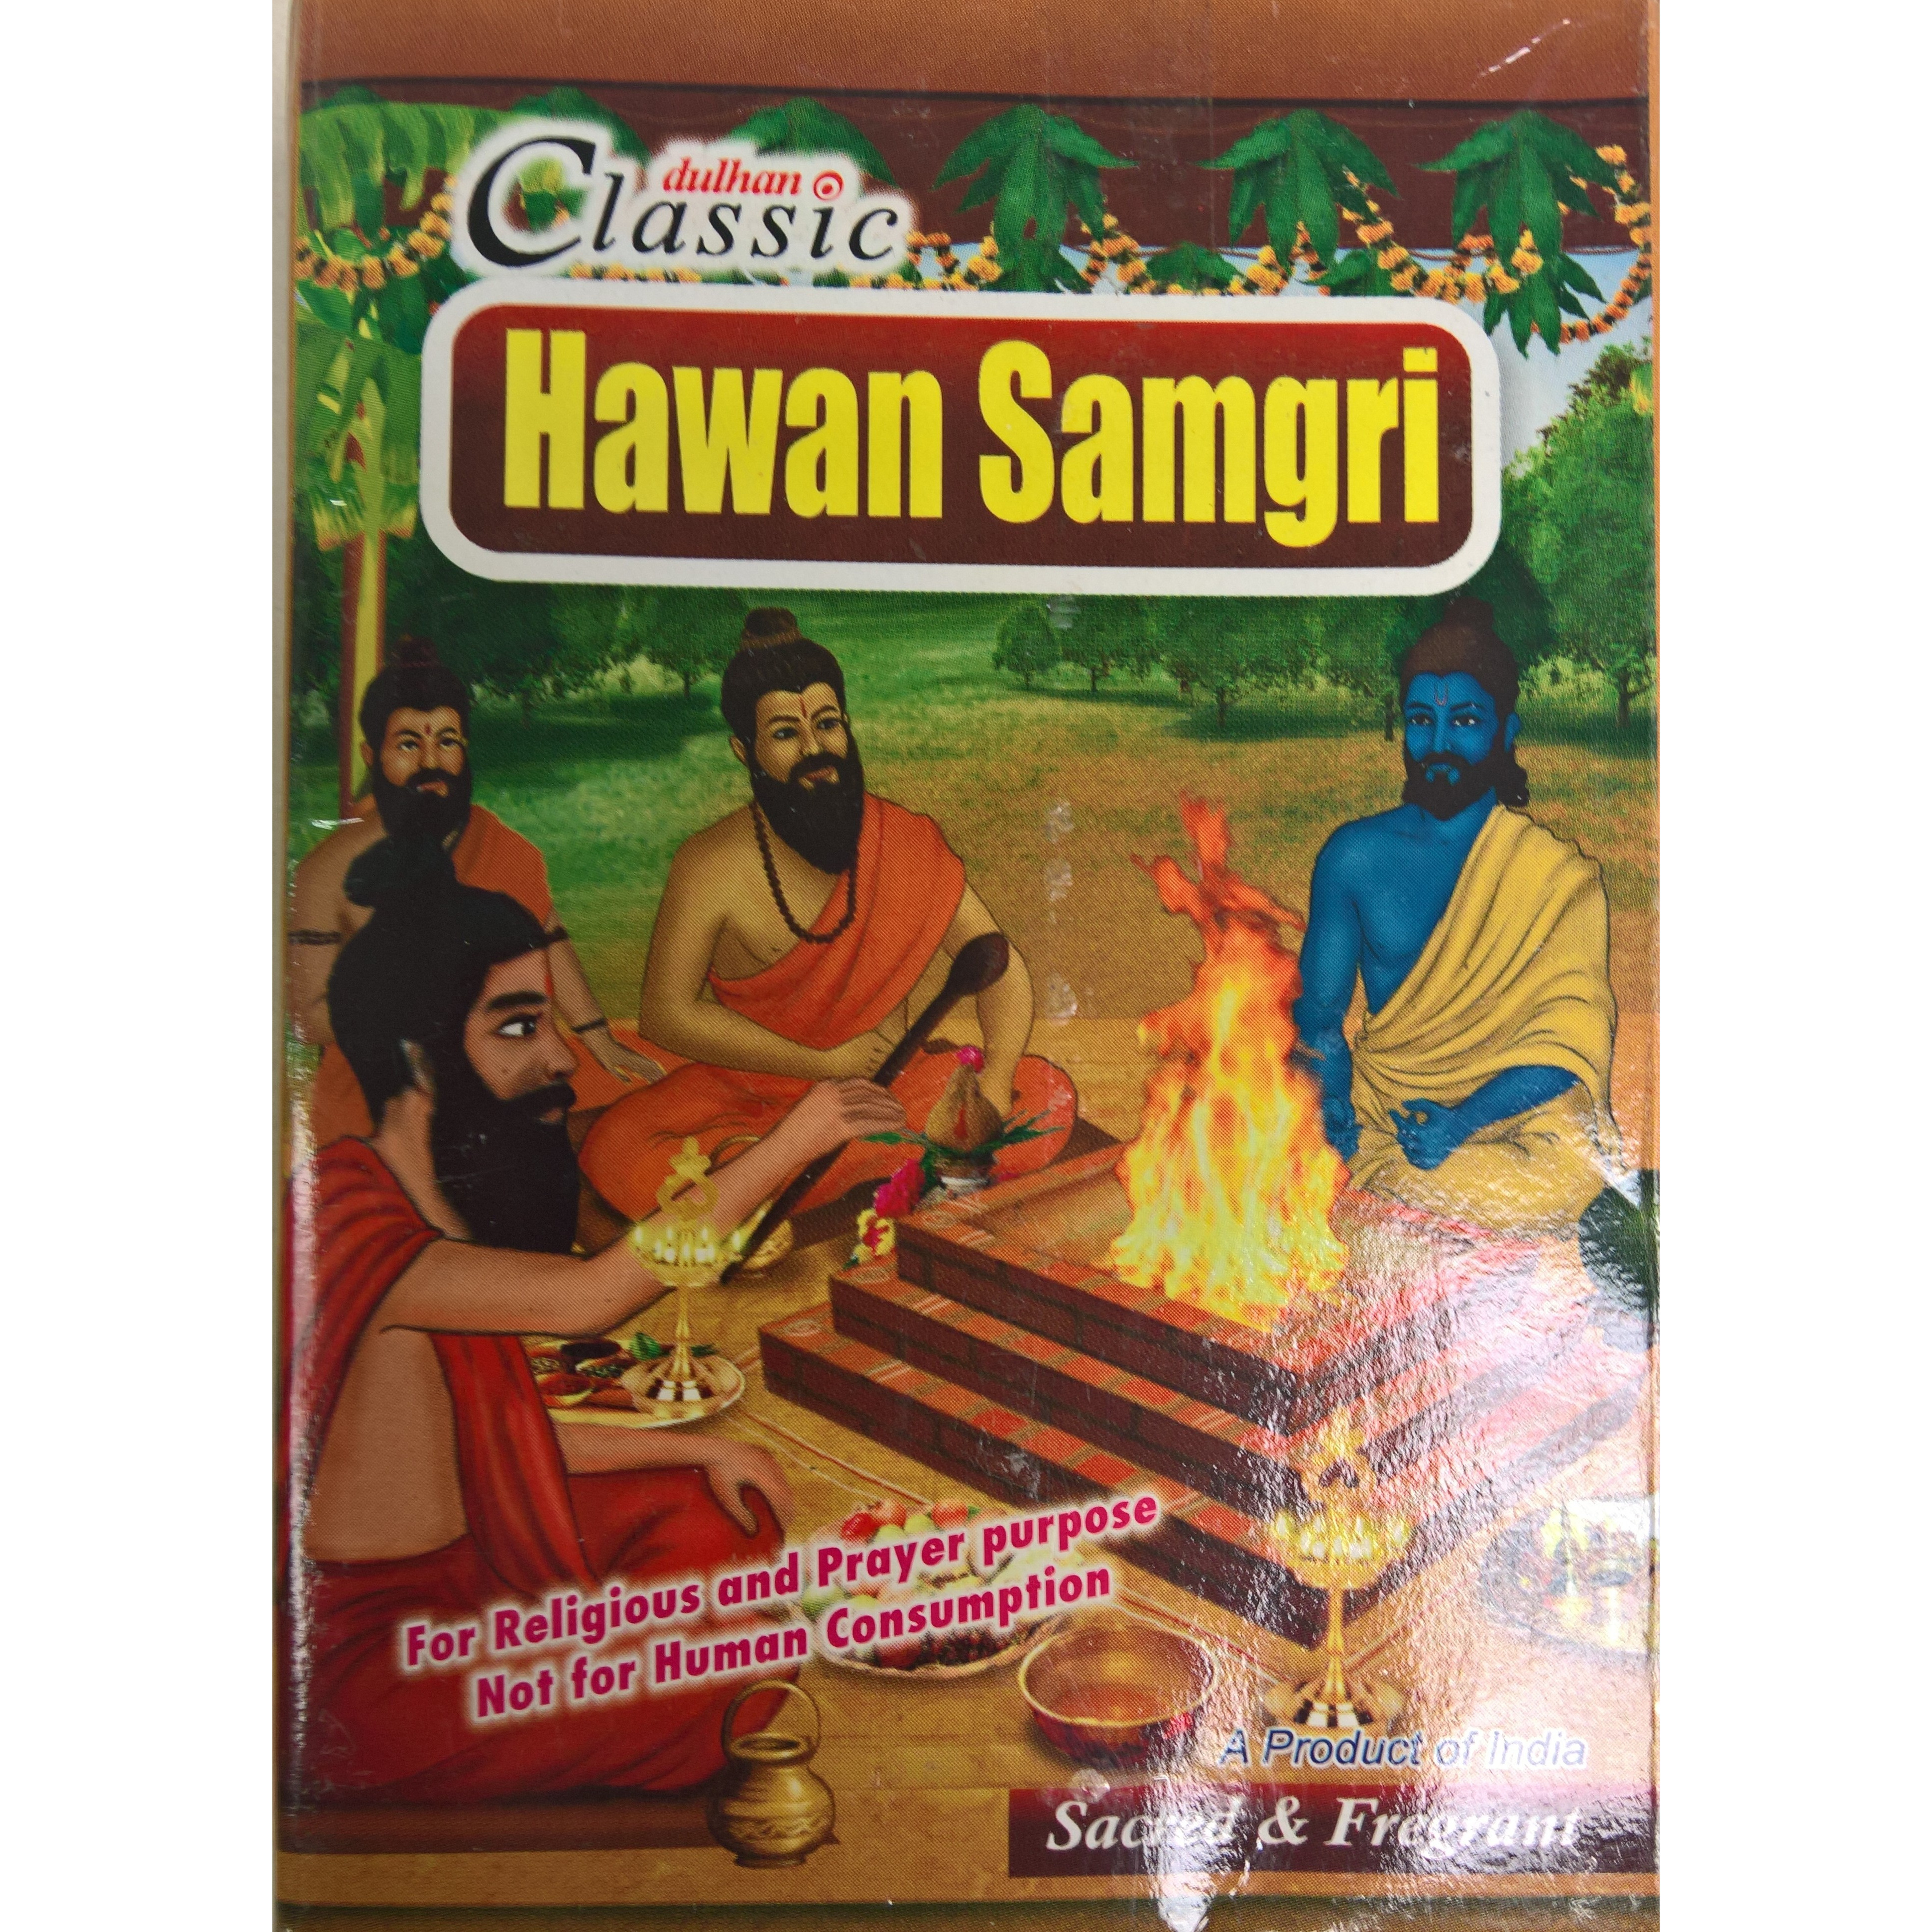 Dulhan Classic Hawan Samagri (Herbal)- 200g (7 Oz)